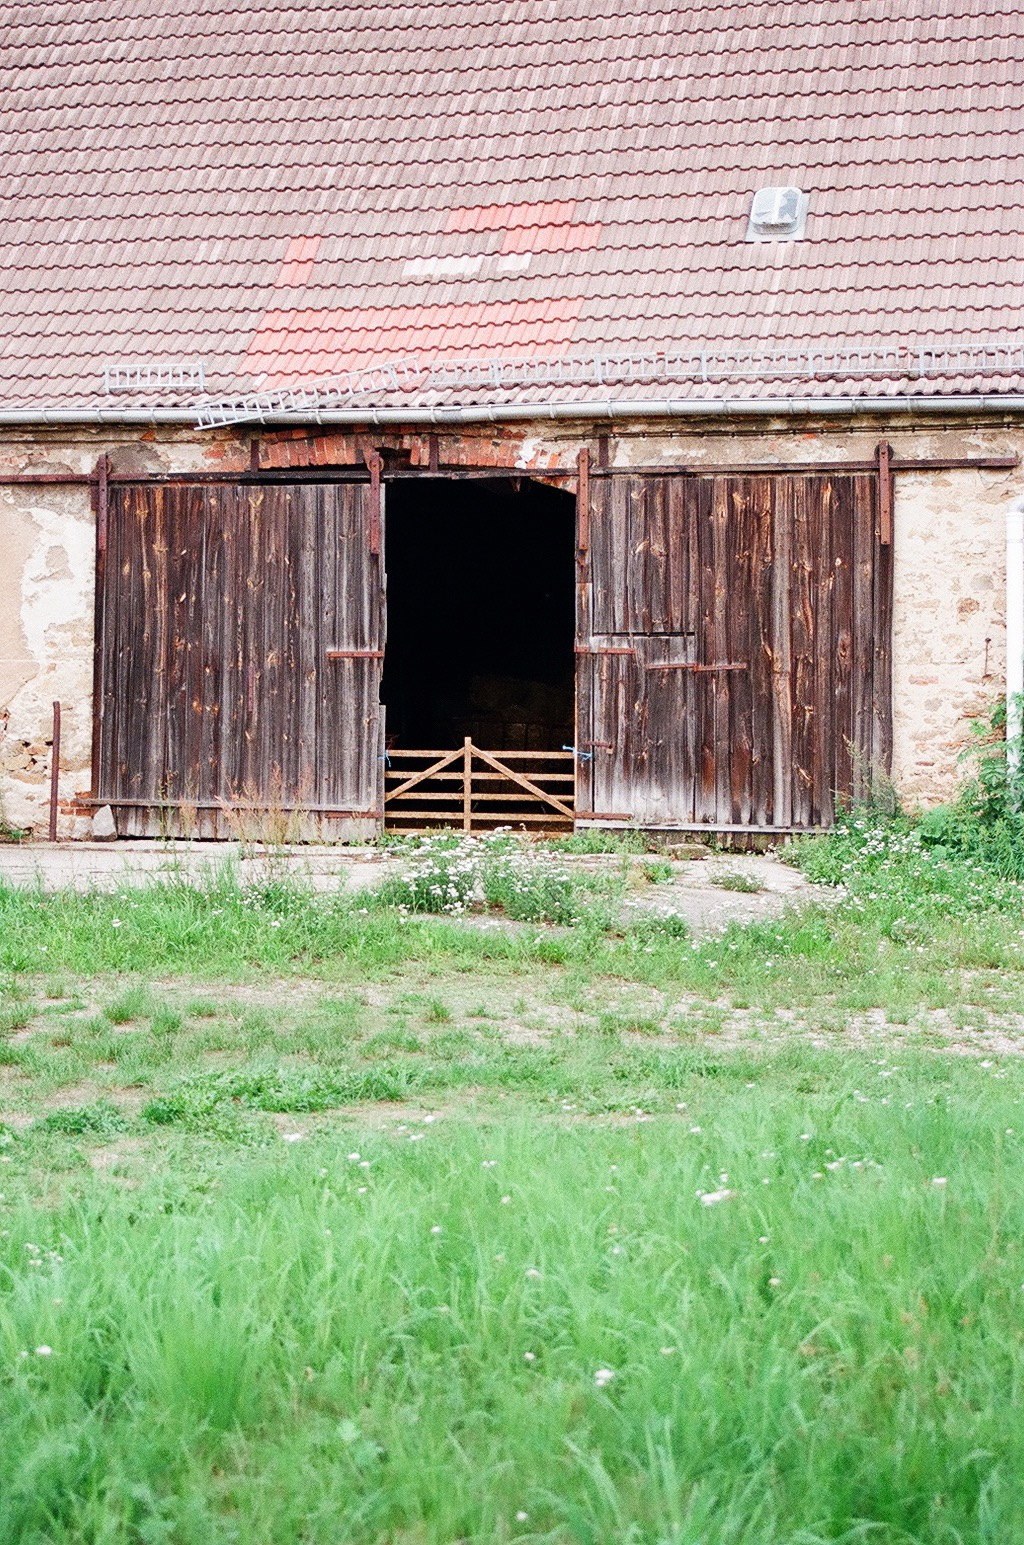 Location Germany Barns